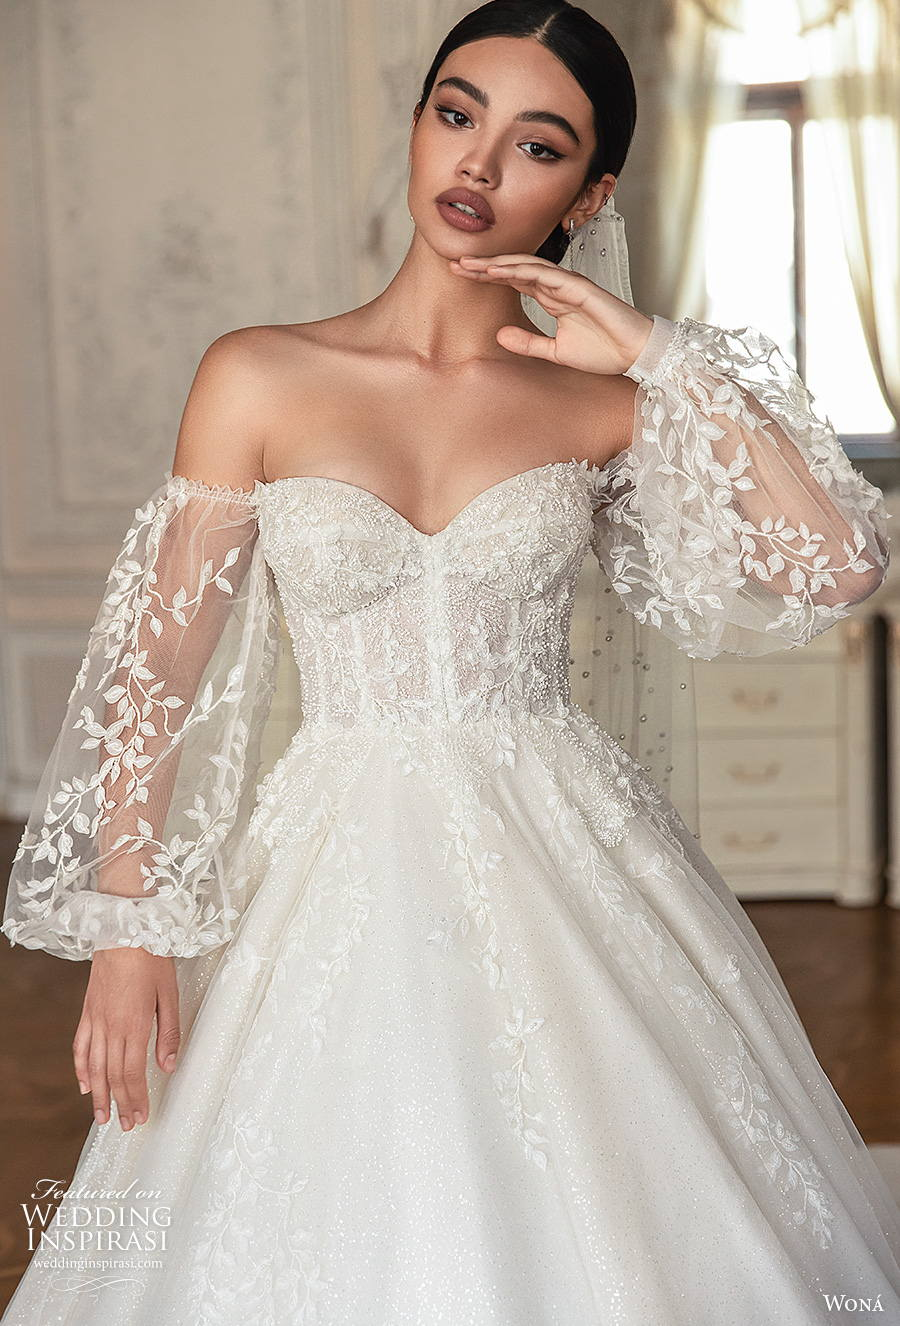 wona concept 2021 romance bridal long bishop sleeves sweetheart neckline heavily embellished bodice romantic princess a  line wedding dress mid back royal train (7) zv